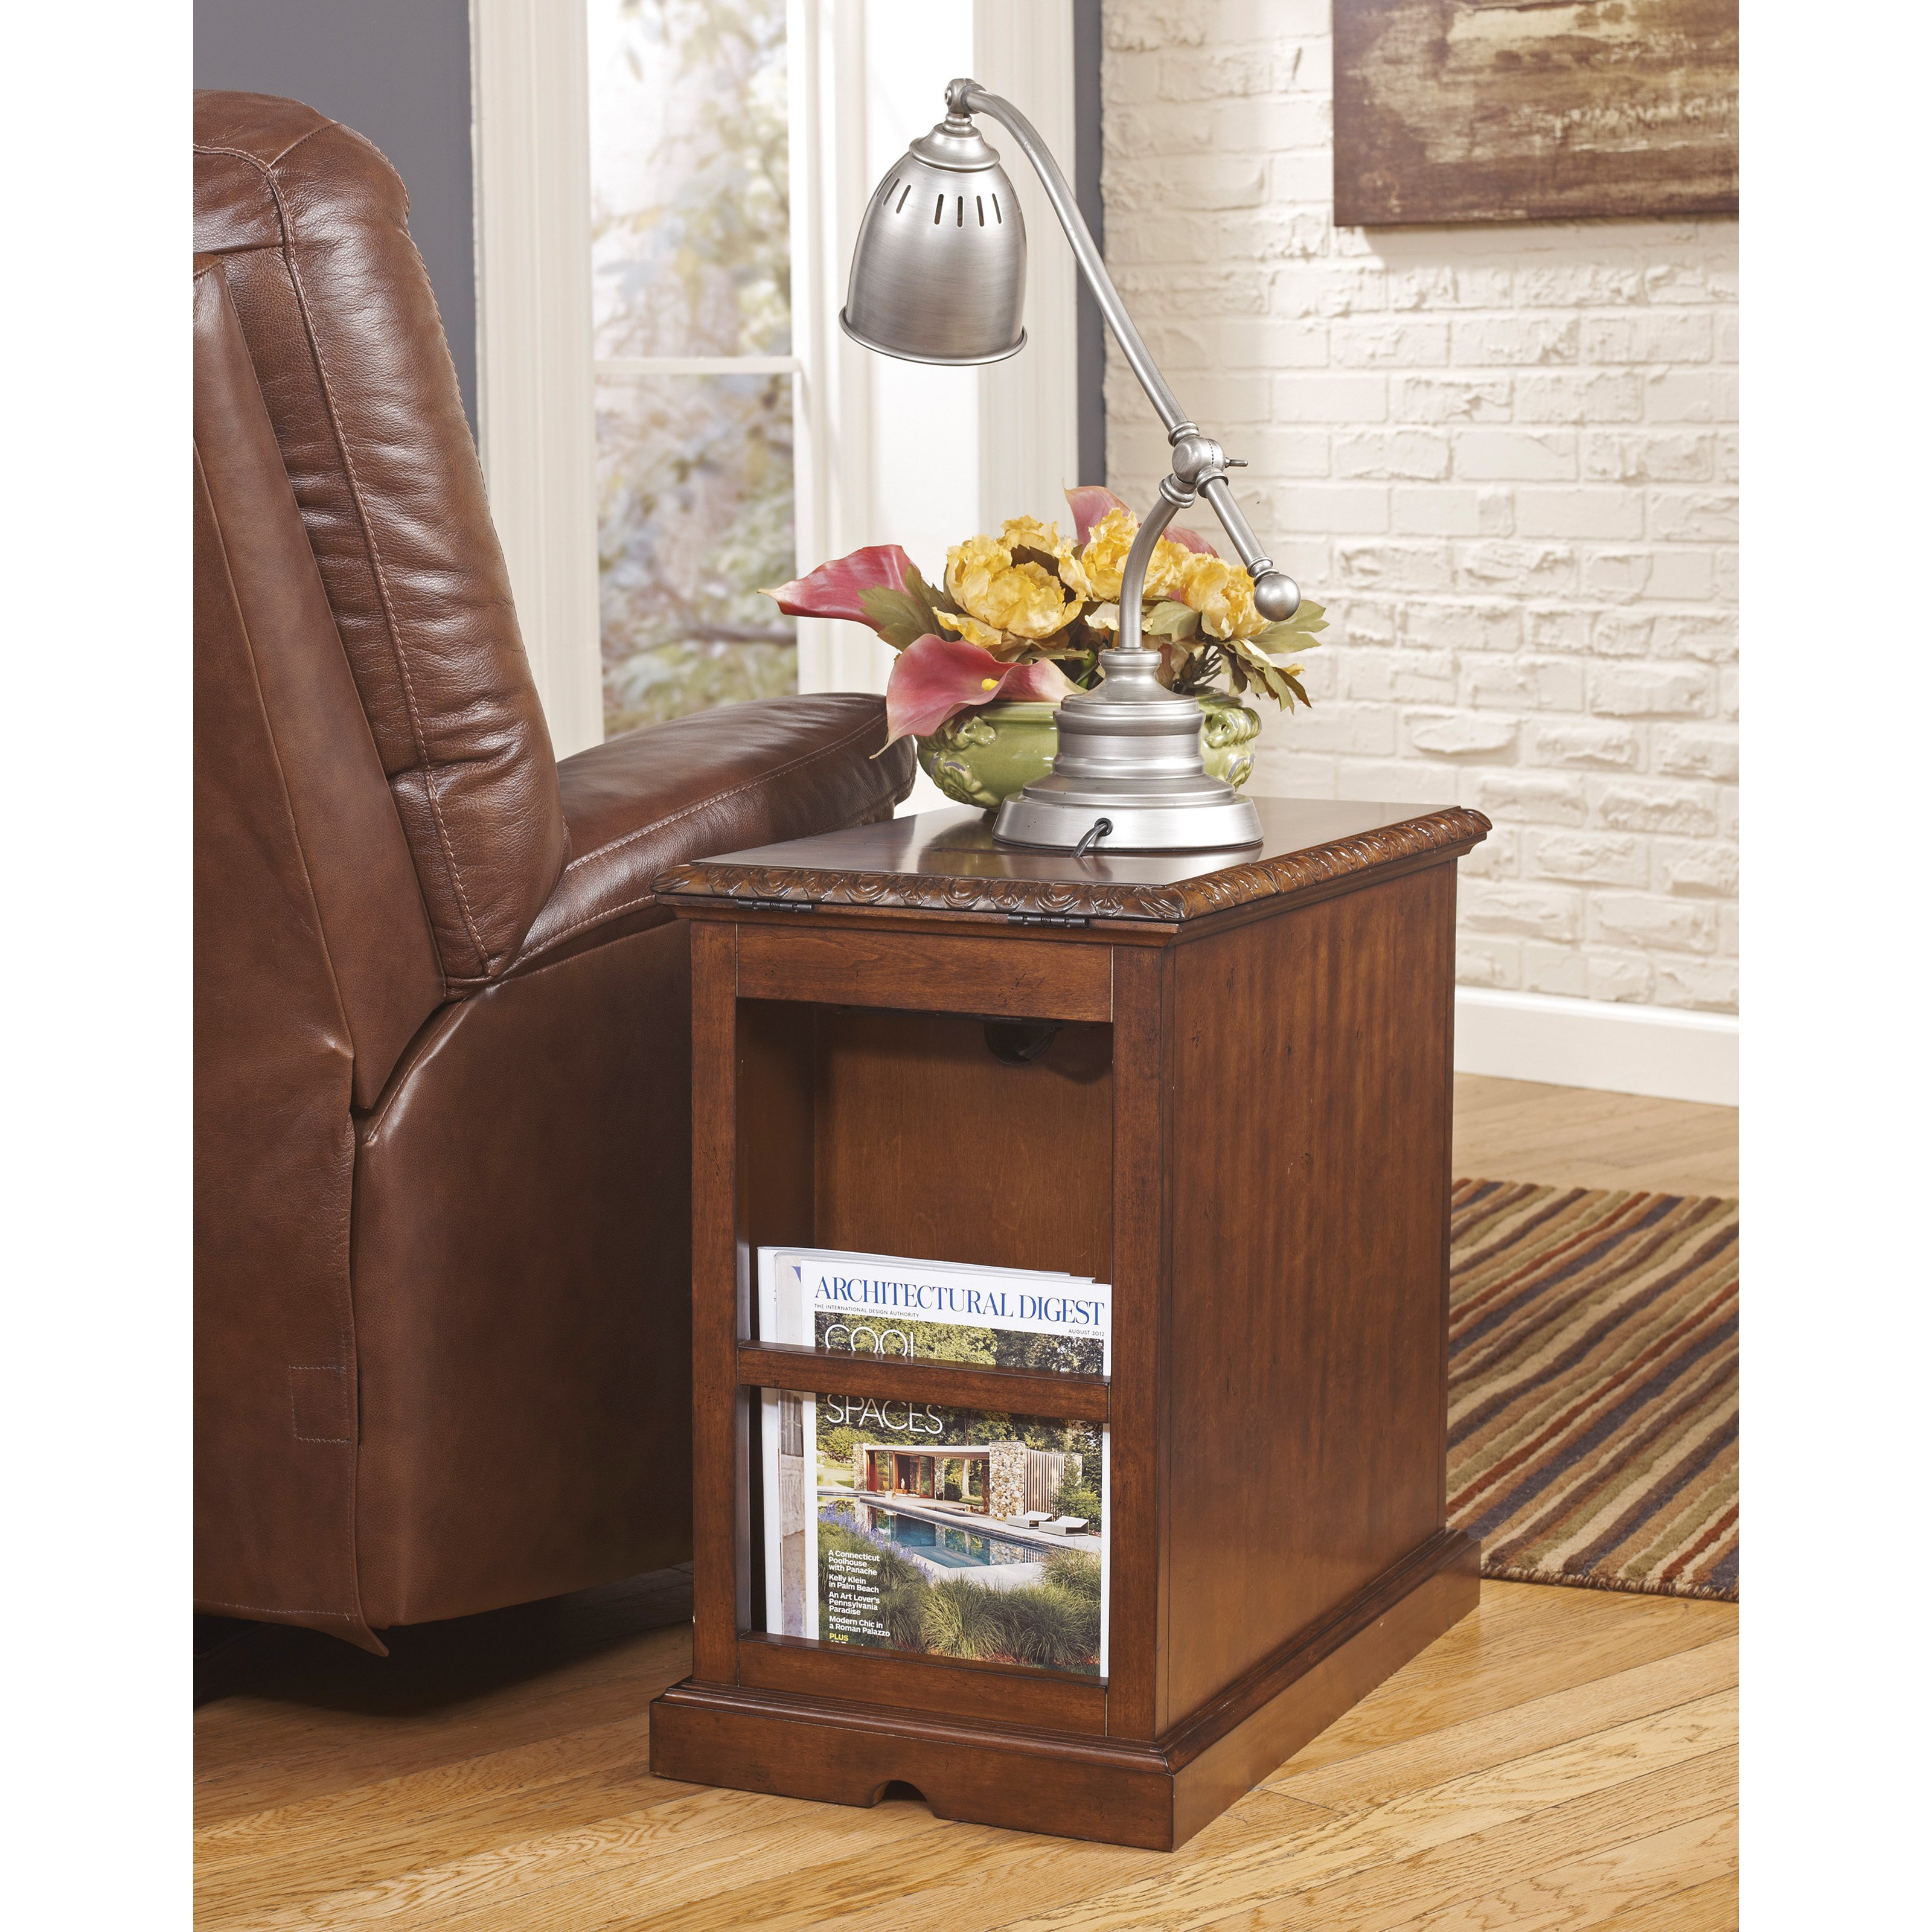 furniture complete your living room with new chairside end table tables storage basket drawers shelves skinny wedge accent baskets tall dark wood nest cream console bathroom